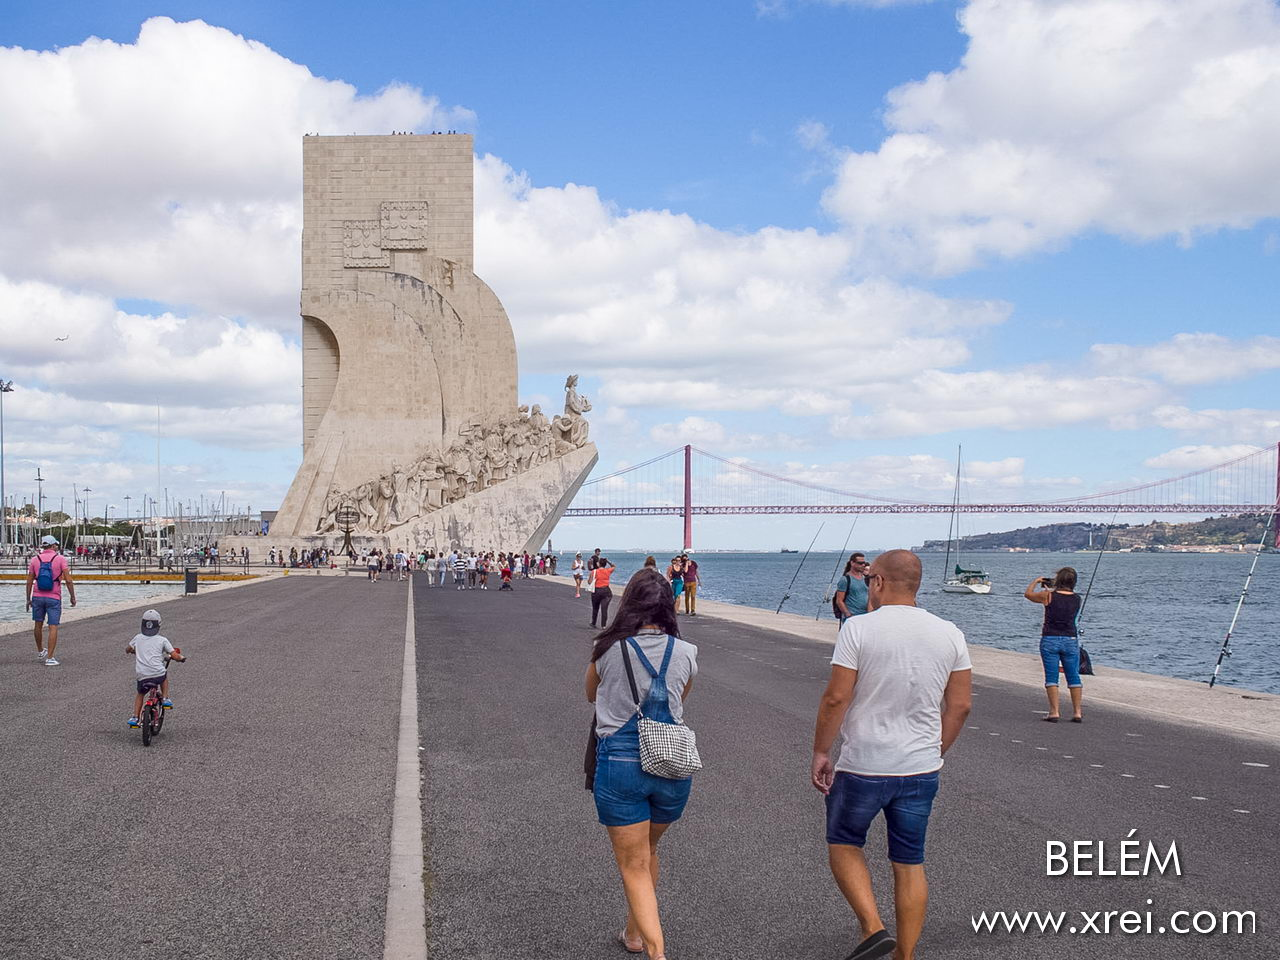 Padrão dos Descobrimentos is one of the great attractions of Lisbon, a monument decorated with 33 statues of the figures of Portuguese discoveries built in Belém facing the river in honor of Infante Dom Henrique, with exhibition halls alluding to the theme of Portuguese discoveries, an auditorium and a viewpoint that allows a panoramic view of Belém and the Tagus river.